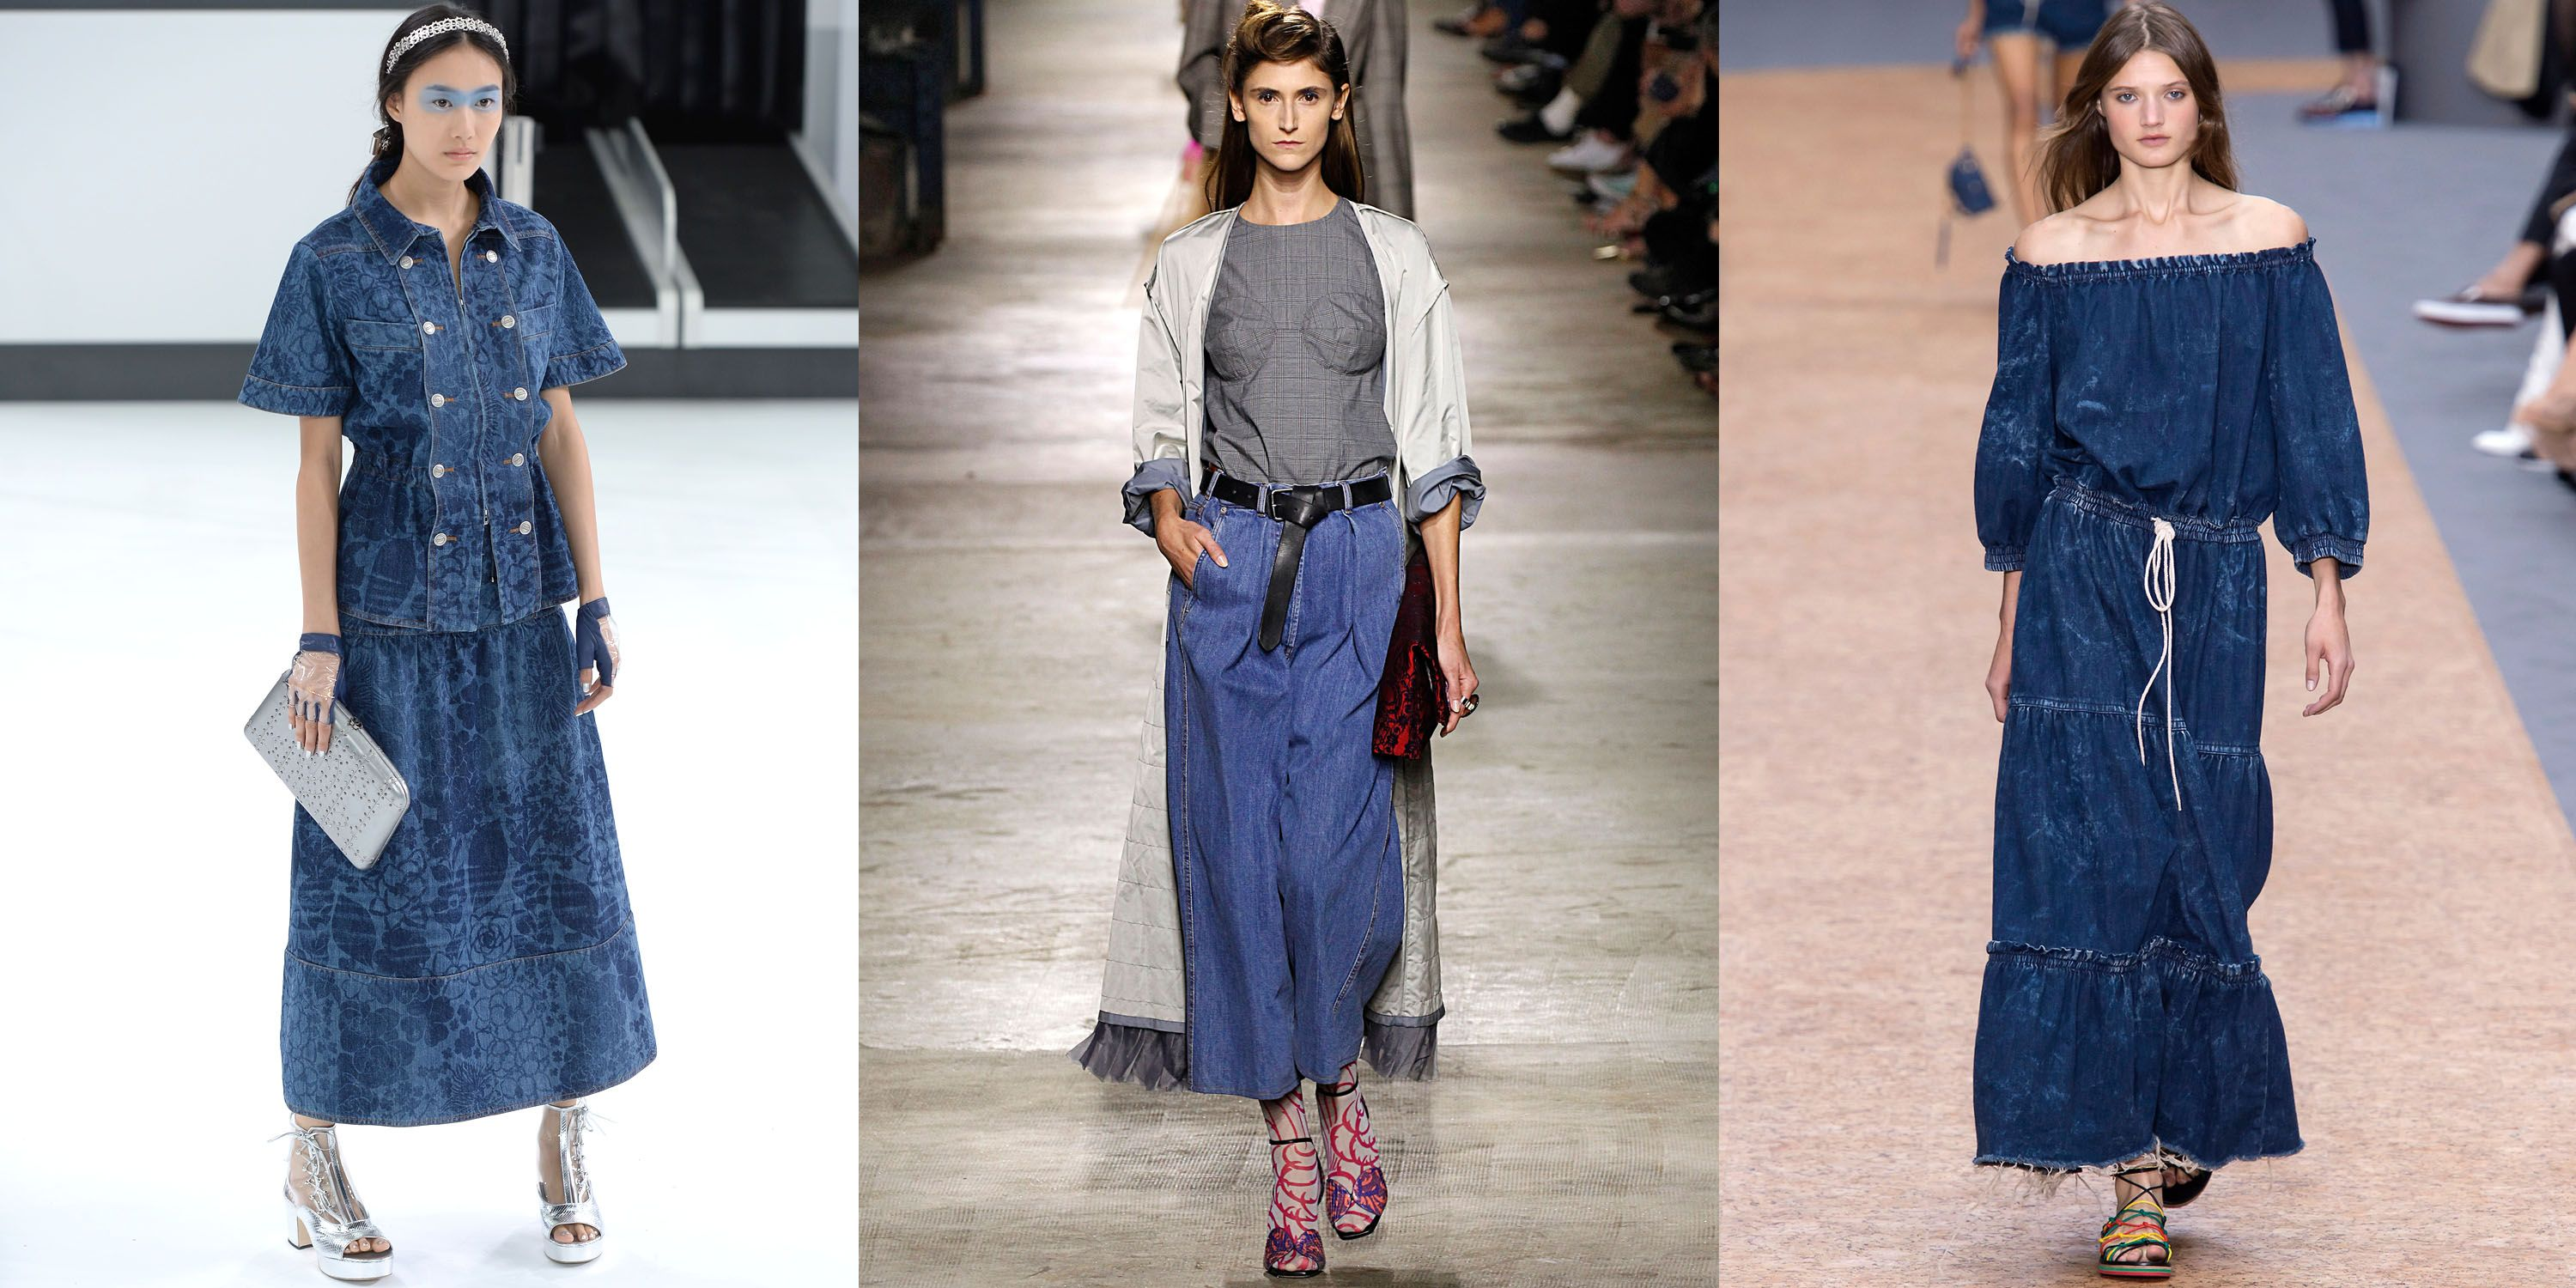 <p>Traditional downtown pieces got a high-fashion run on the spring 2016 runway. Labels such as Chanel, Dries Van Noten and Chloé presented an elevated version of jackets, pants and bohemian dresses, getting us in the mood for a full-on denim wardrobe. </p><p><span></span></p>